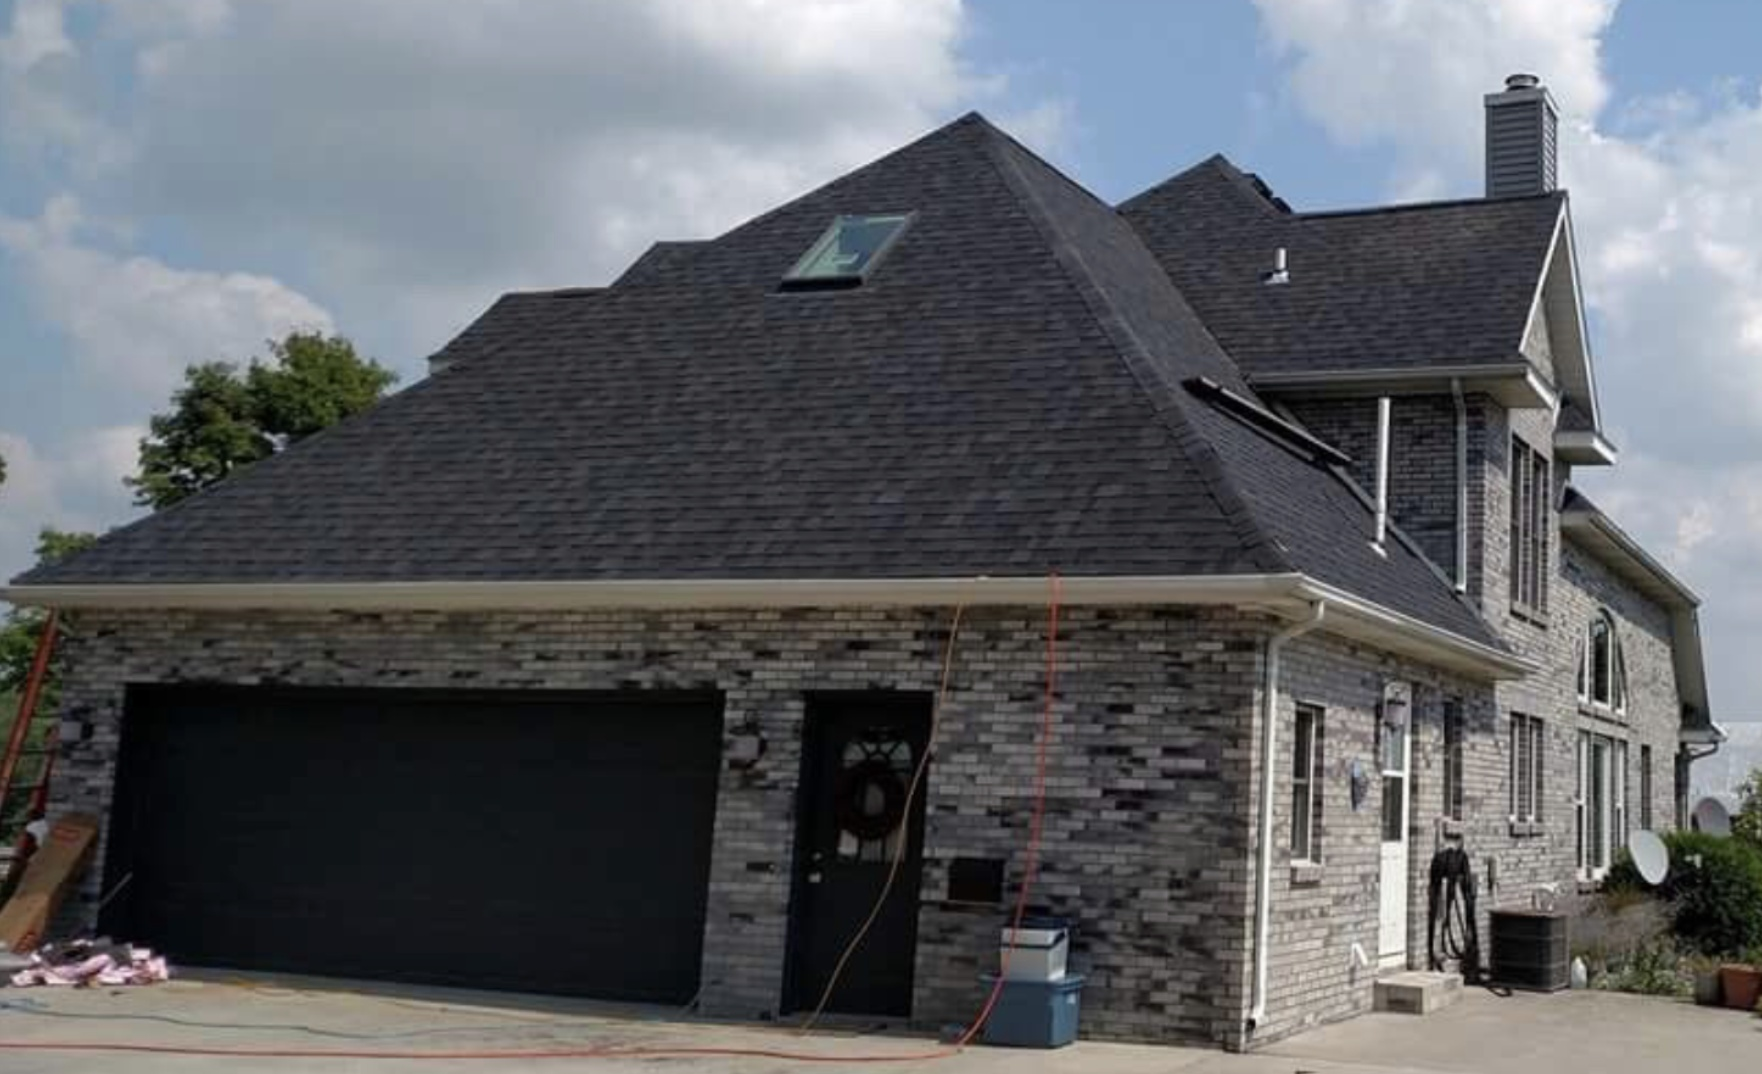 Liberty Center Ohio Completed Roof TBT 2 years